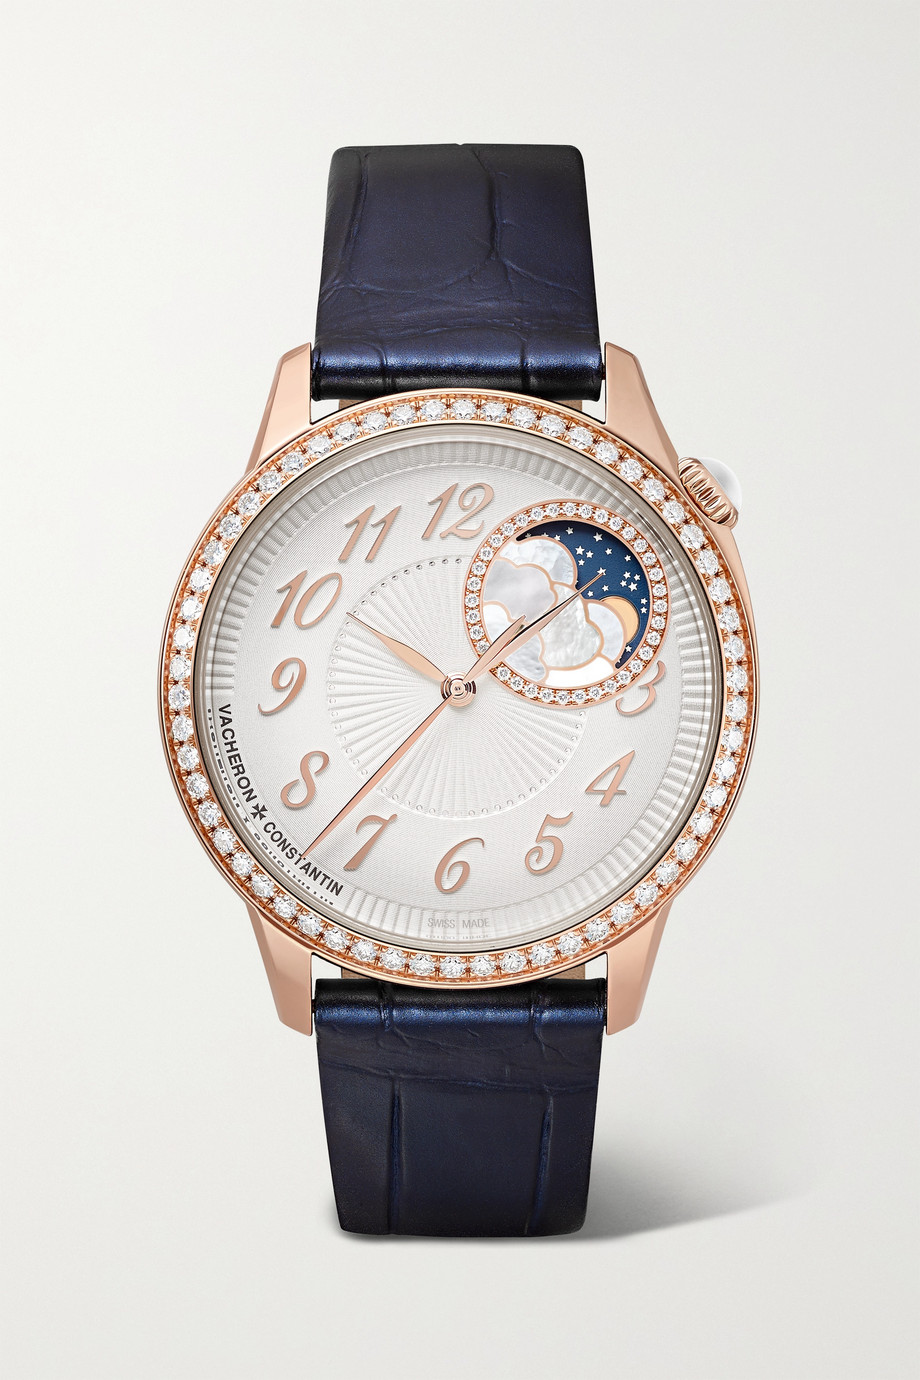 Vacheron Constantin Montre en or rose 18 carats et diamants Égérie Automatique 37 mm